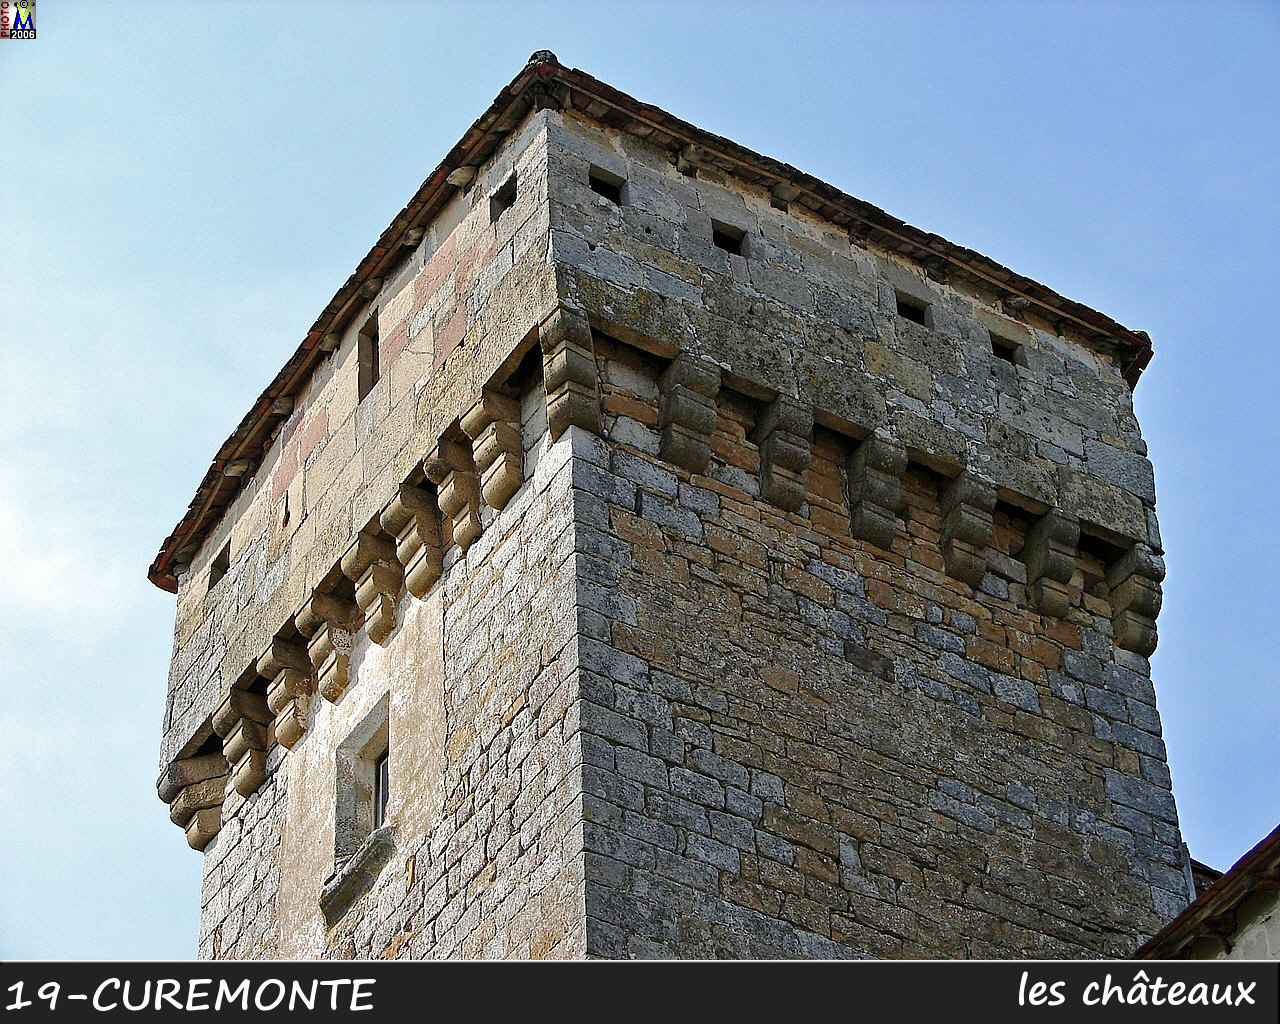 19CUREMONTE_chateau_126.jpg